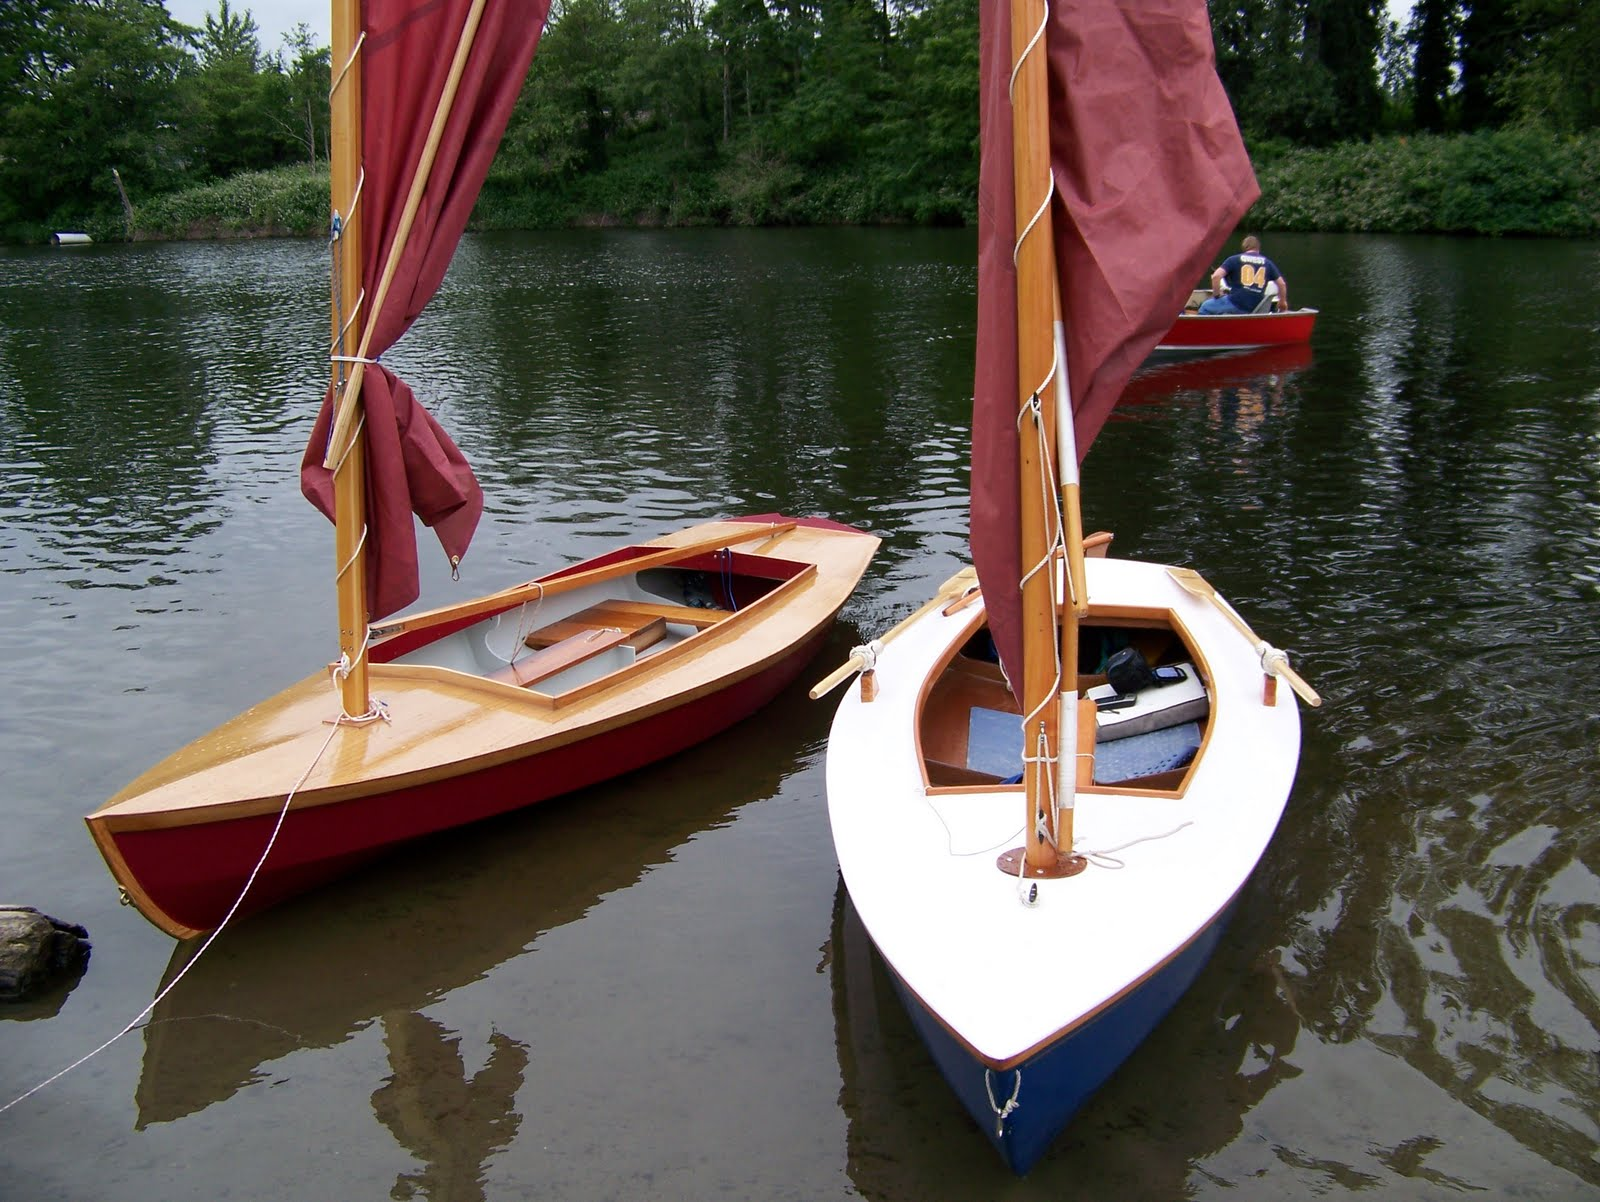 In conversation with other boat builders, we agreed that this boat ...